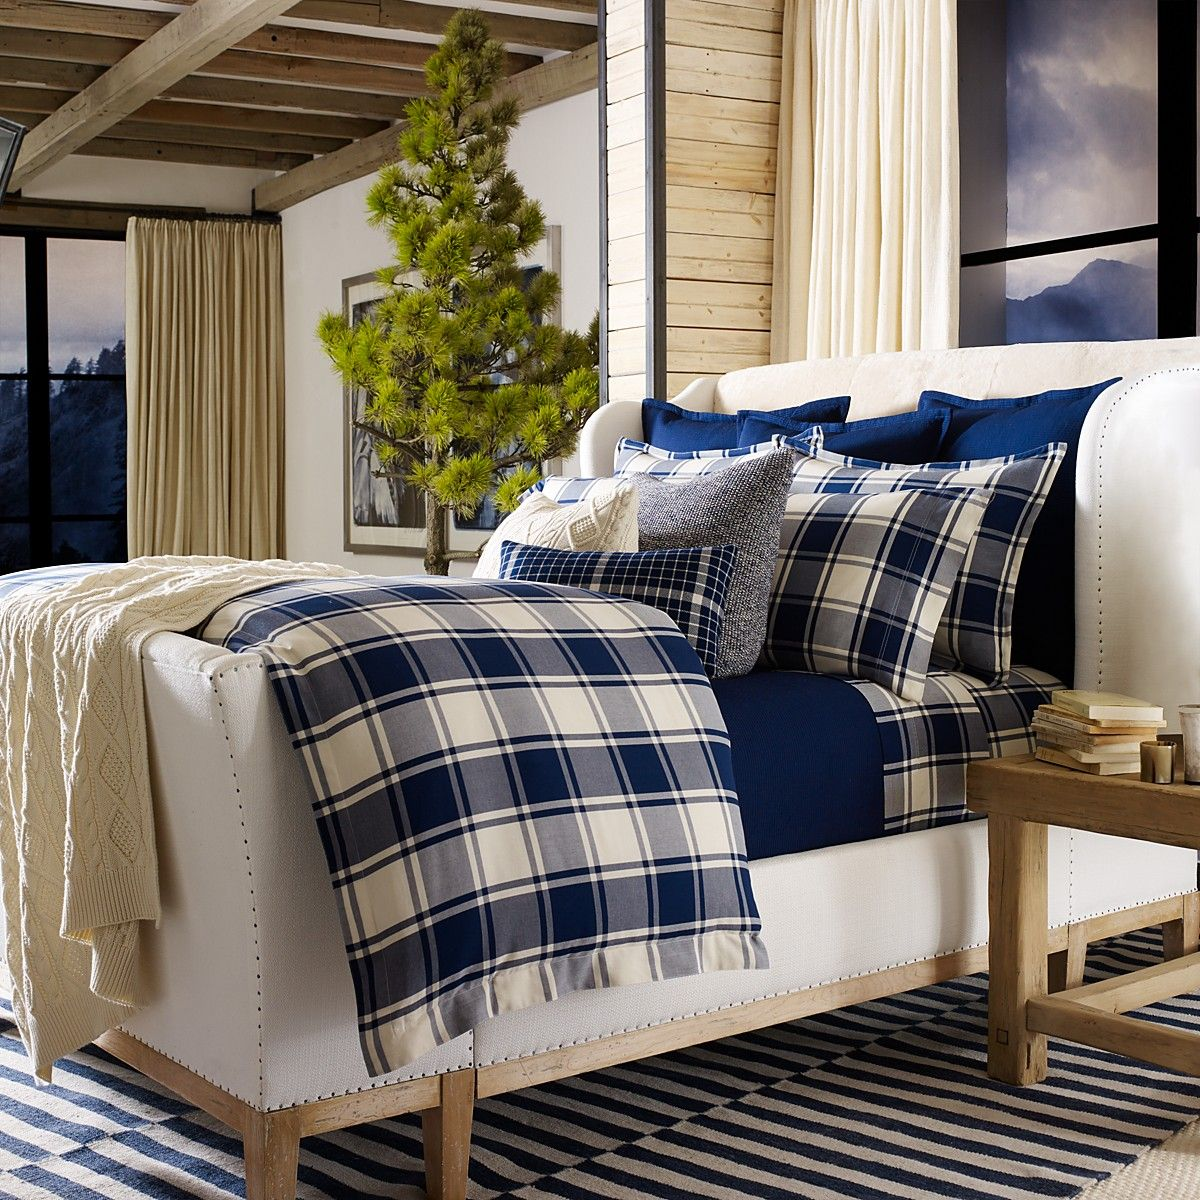 Ralph lauren plaid bedding - There S Nothing Like Charming Seasonal Prints To Help You And The Hubby Get Settled Into Your New Home Add The Ralph Lauren Winter Harbour Bedding